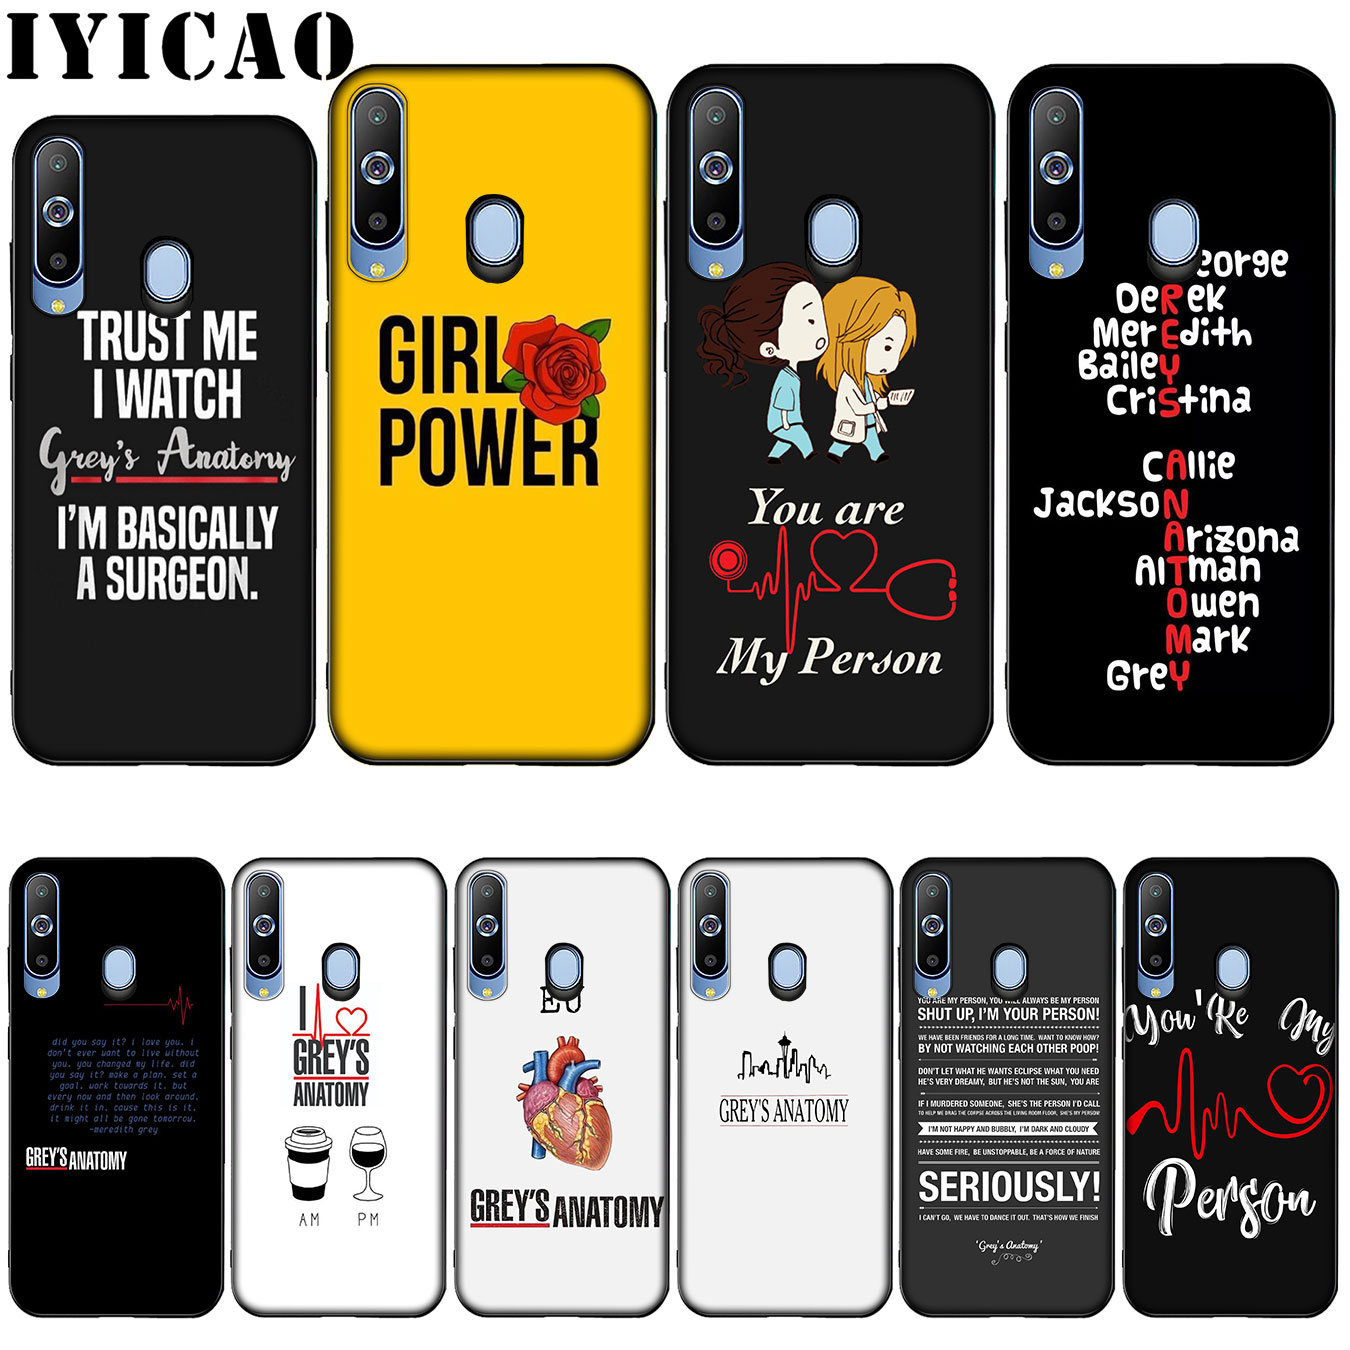 IYICAO <font><b>greys</b></font> <font><b>anatomy</b></font> Hot selling Silicone Soft <font><b>Case</b></font> for Samsung Galaxy A10 A30 A40 A50 A70 M10 M20 M30 Cover image